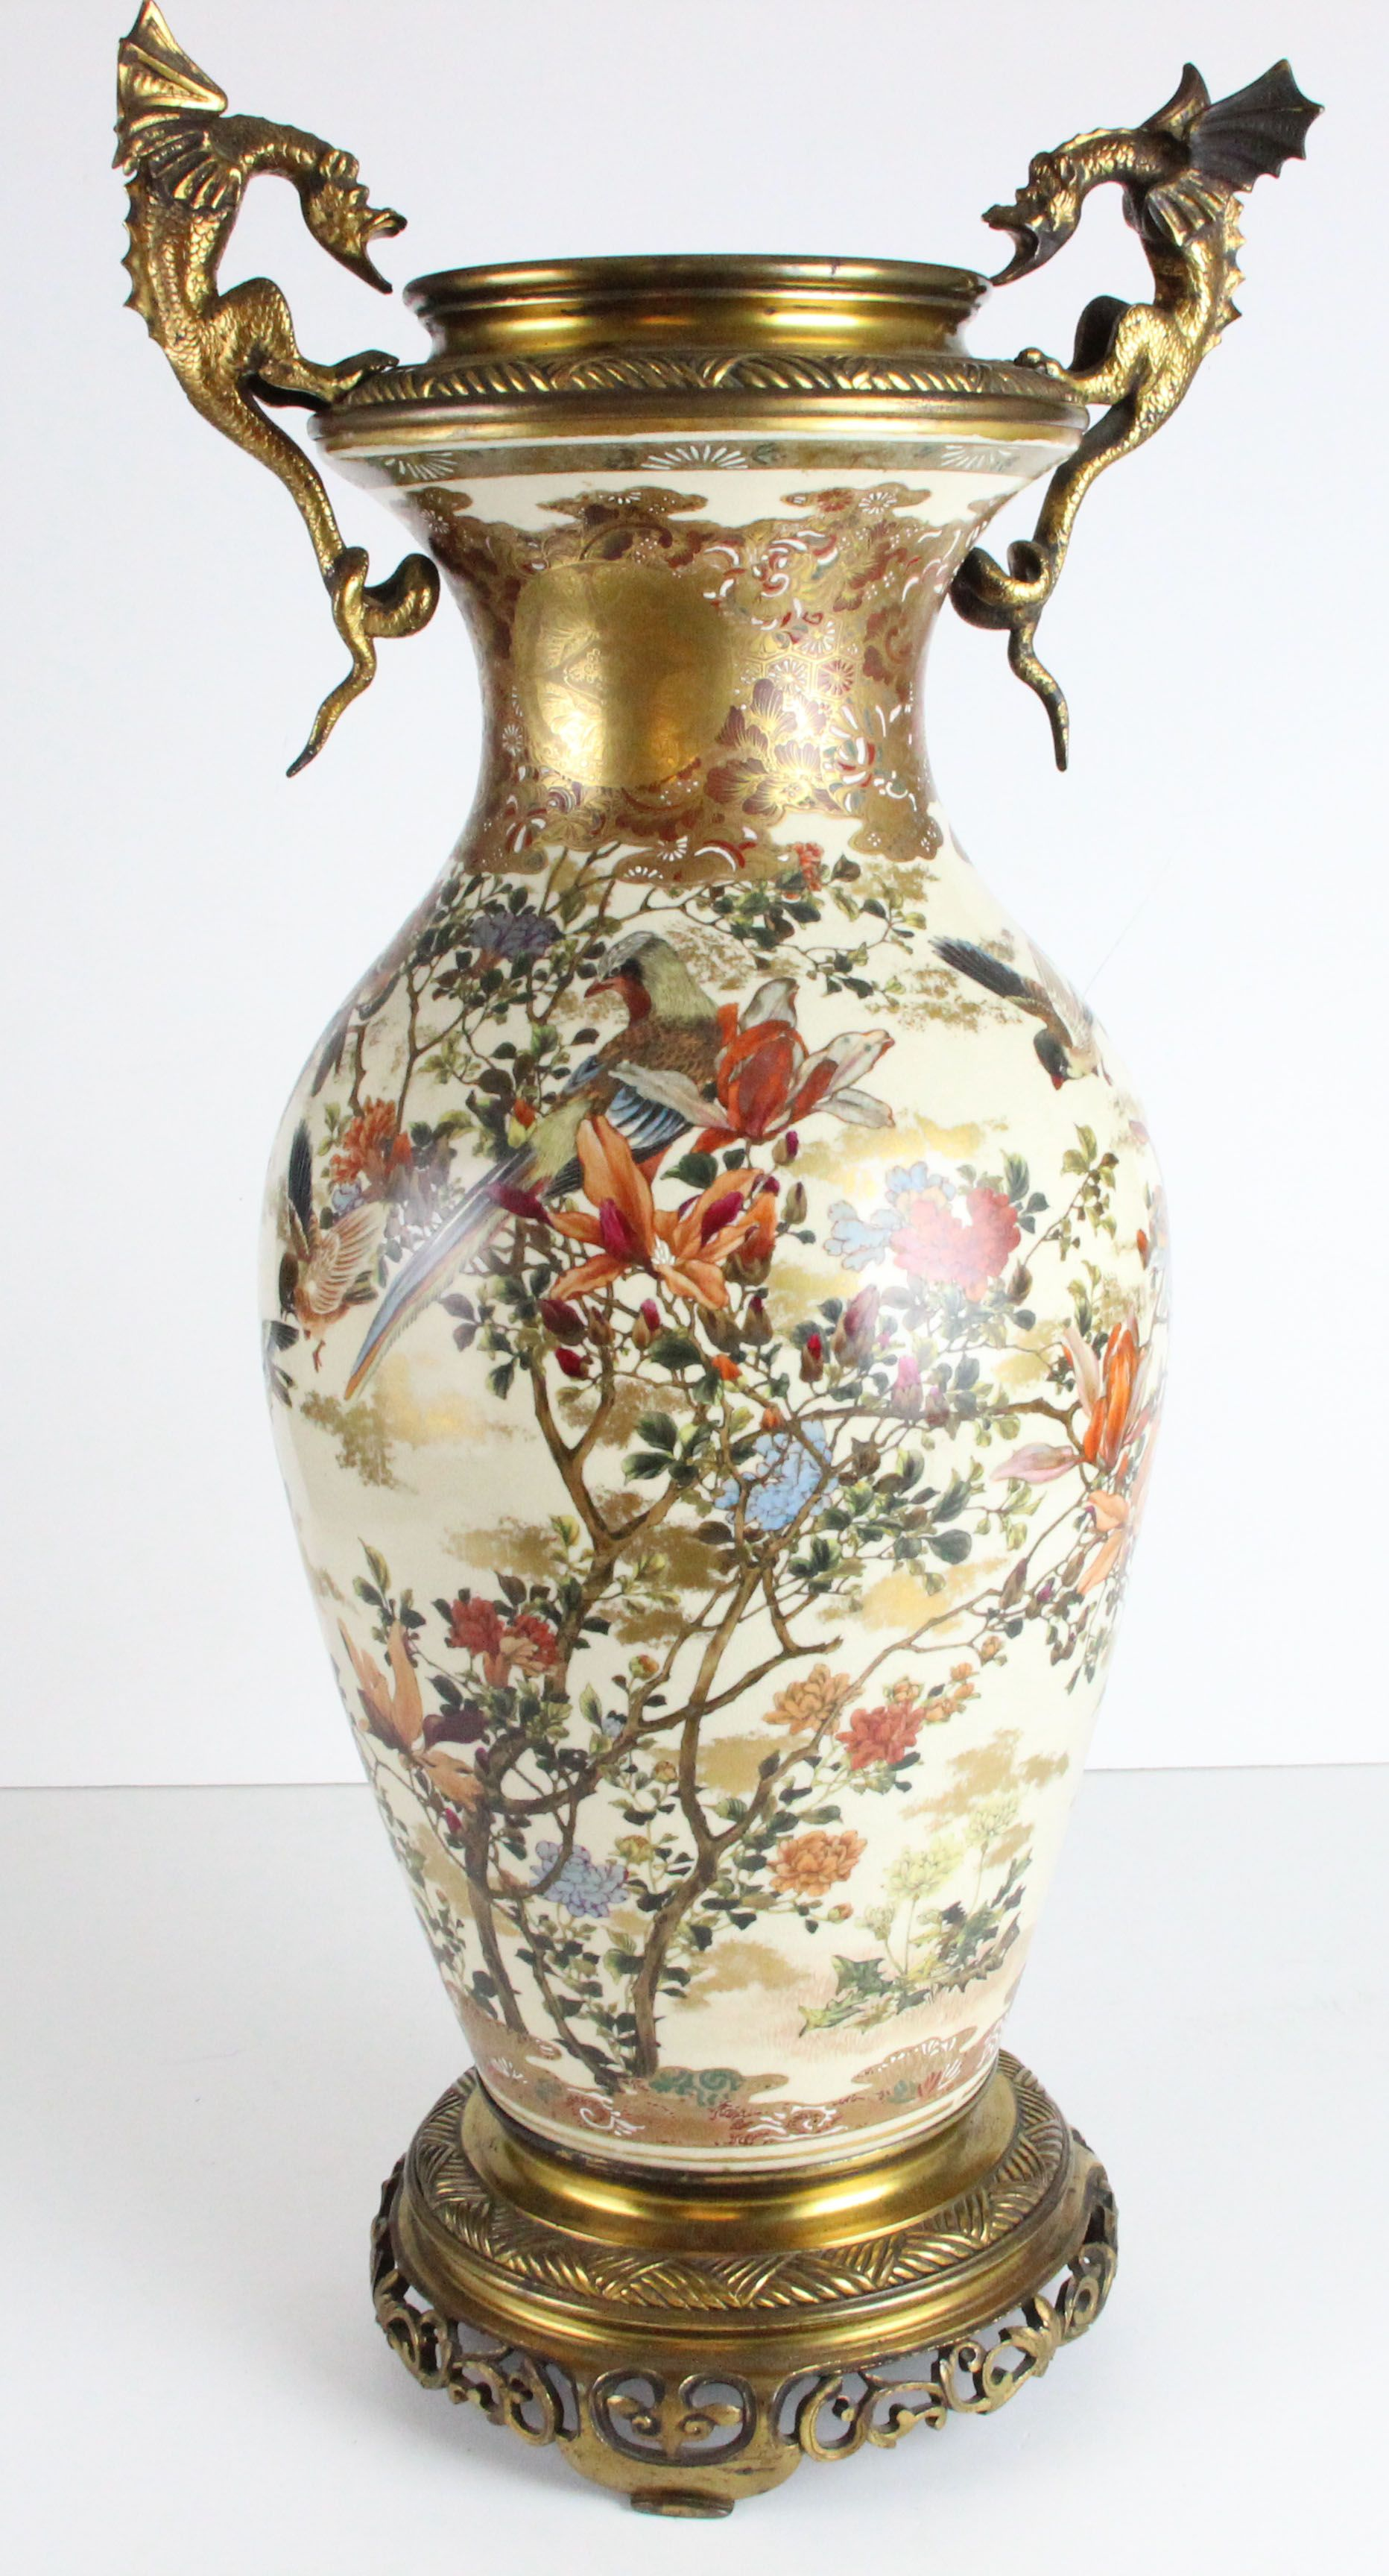 Lot 223 a large late 19thc japanese satsuma vase mounted in lot 223 a large late 19thc japanese satsuma vase mounted in europe as a lamp reviewsmspy